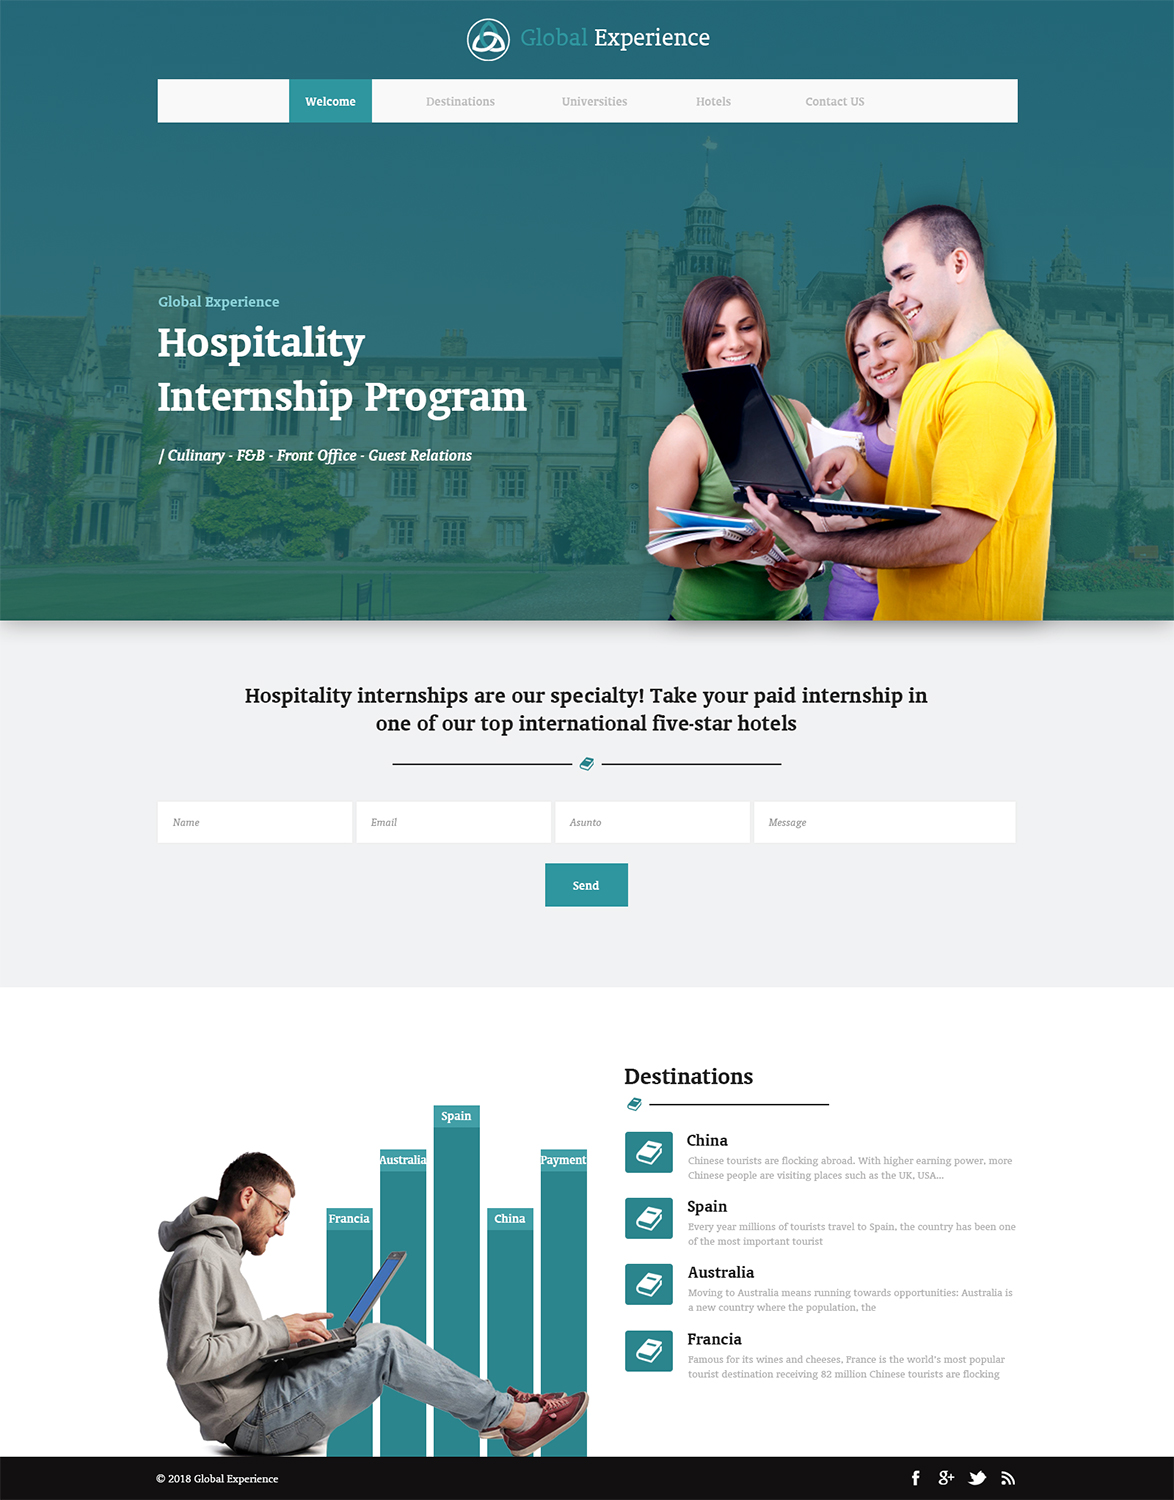 Elegant Playful Education Web Design For Col Col Napoles Delg Benito Mexico D F C P 03810 Mex Rfc Eci0907167p0 By Pixthemes Design 19874172